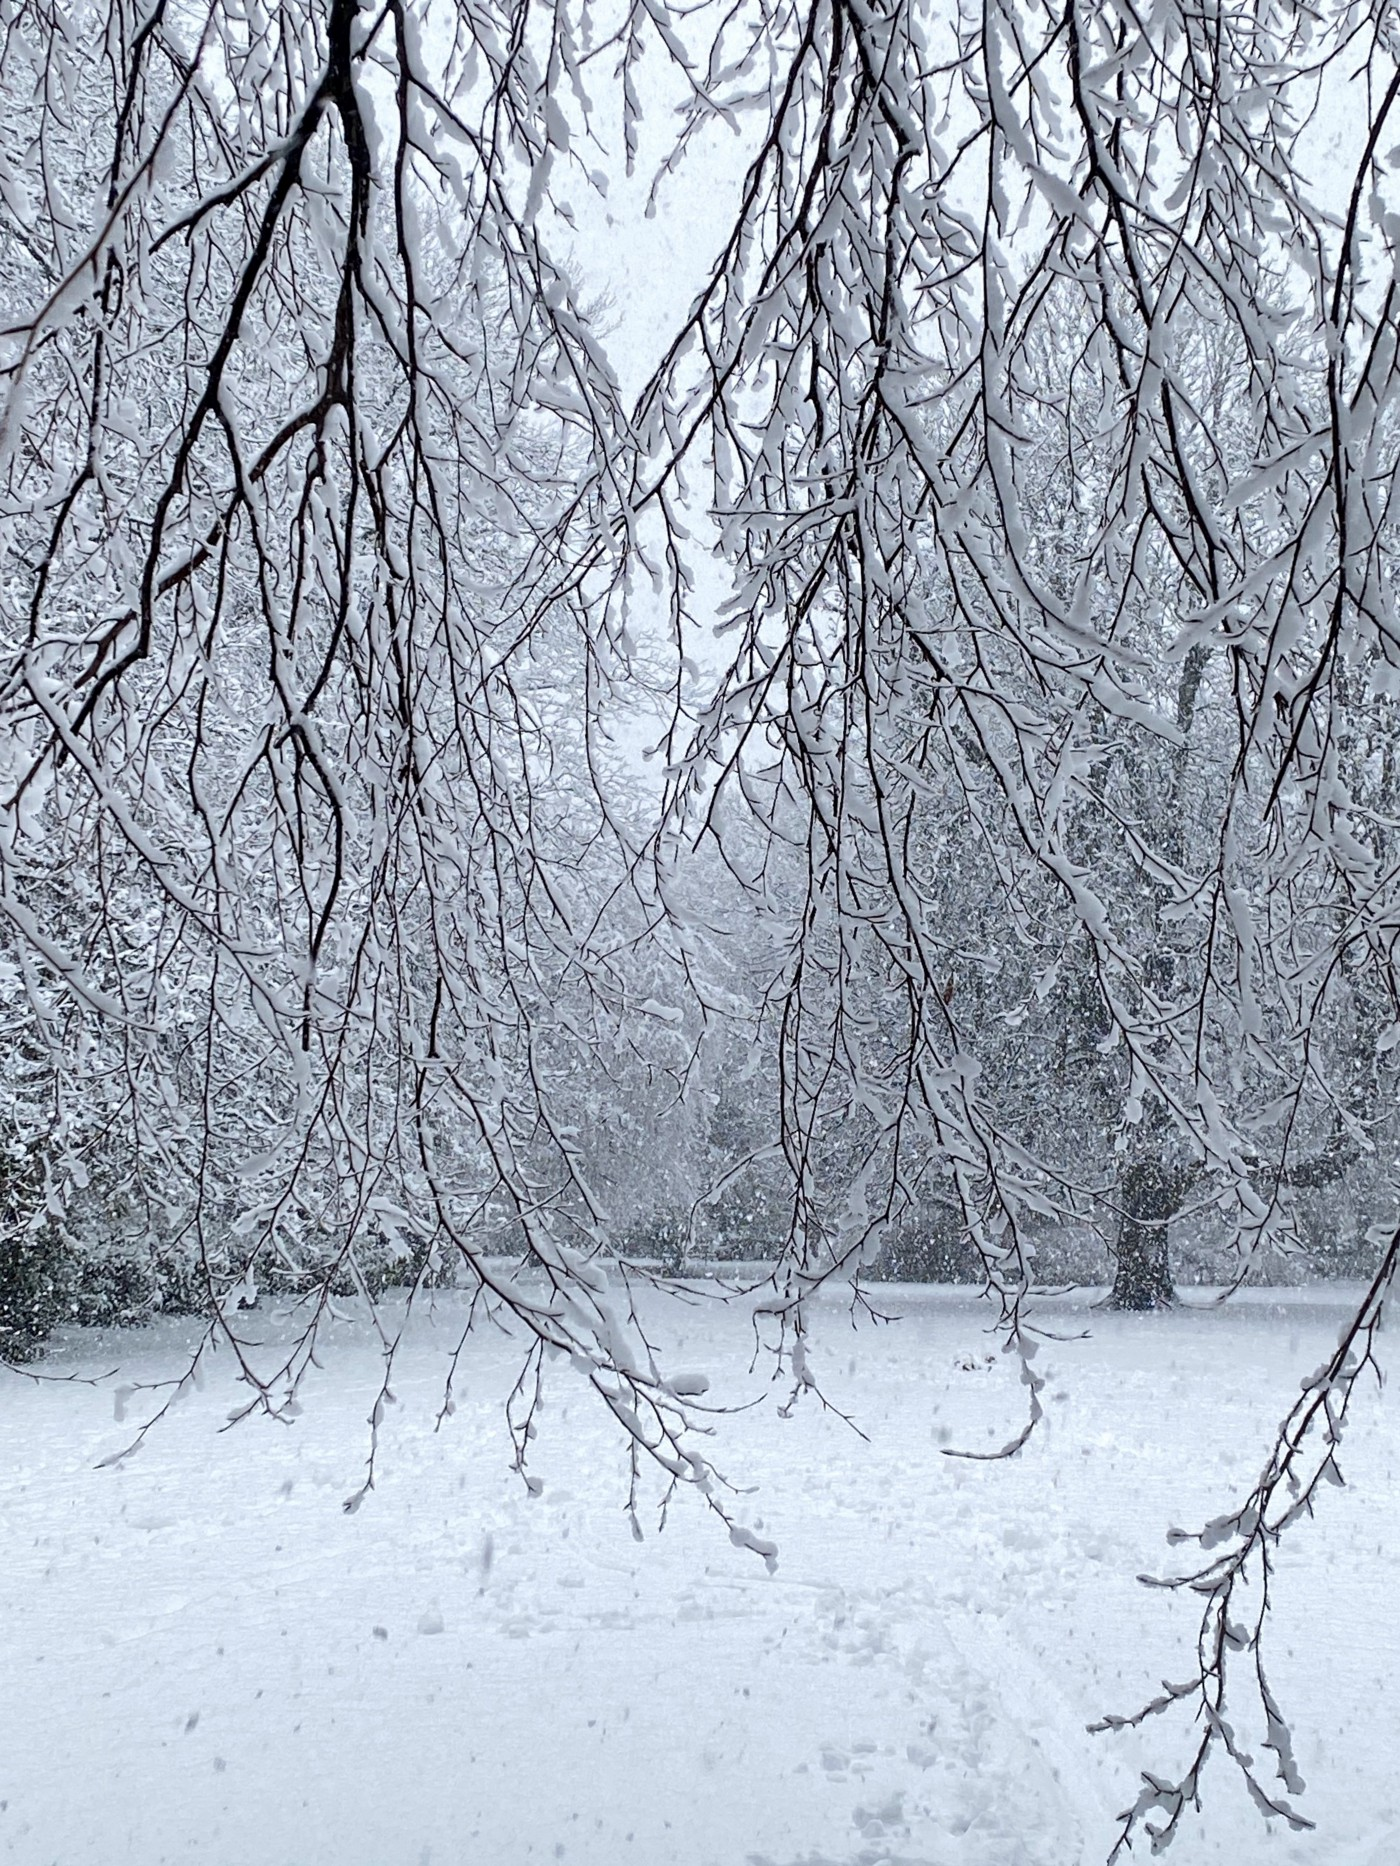 Snow covered branches in front of snowy parkland scene